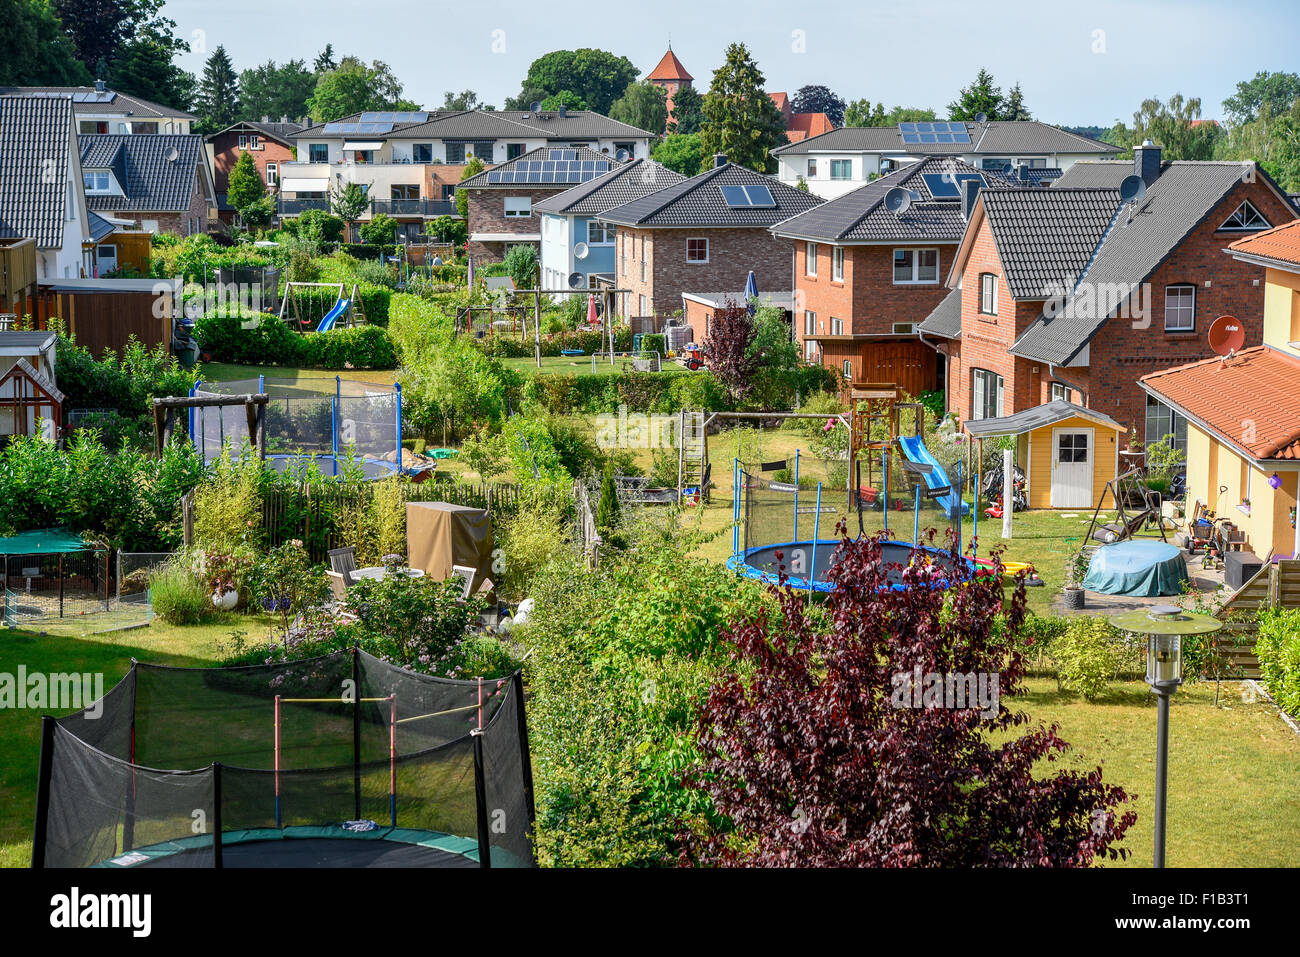 Newly built housing with child-friendly gardens in Preetz, Schleswig-Holstein, Germany - Stock Image